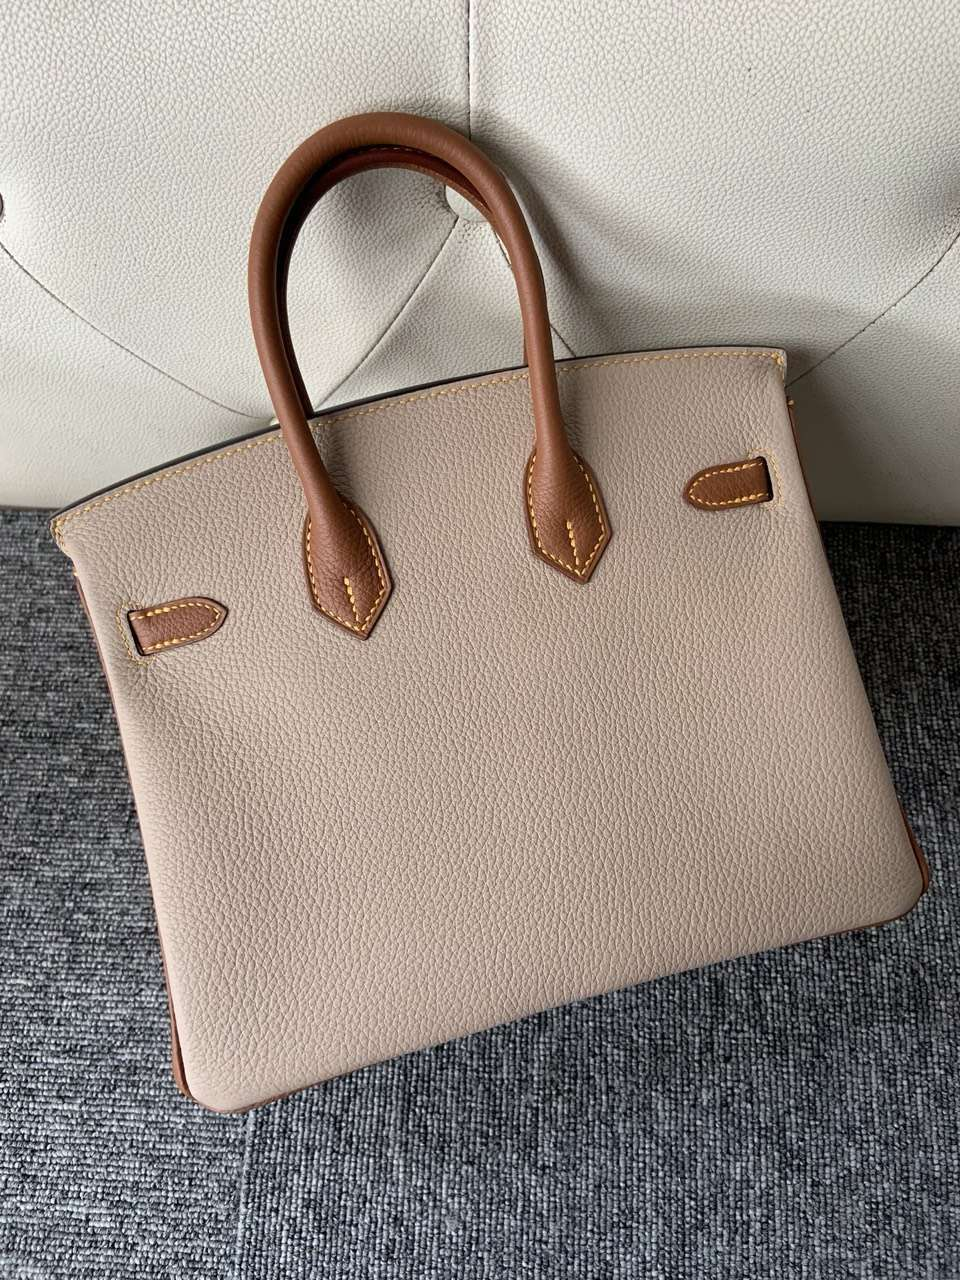 Customize Hermes Two Color Togo Calf Birkin25CM Bag Gold Hardware